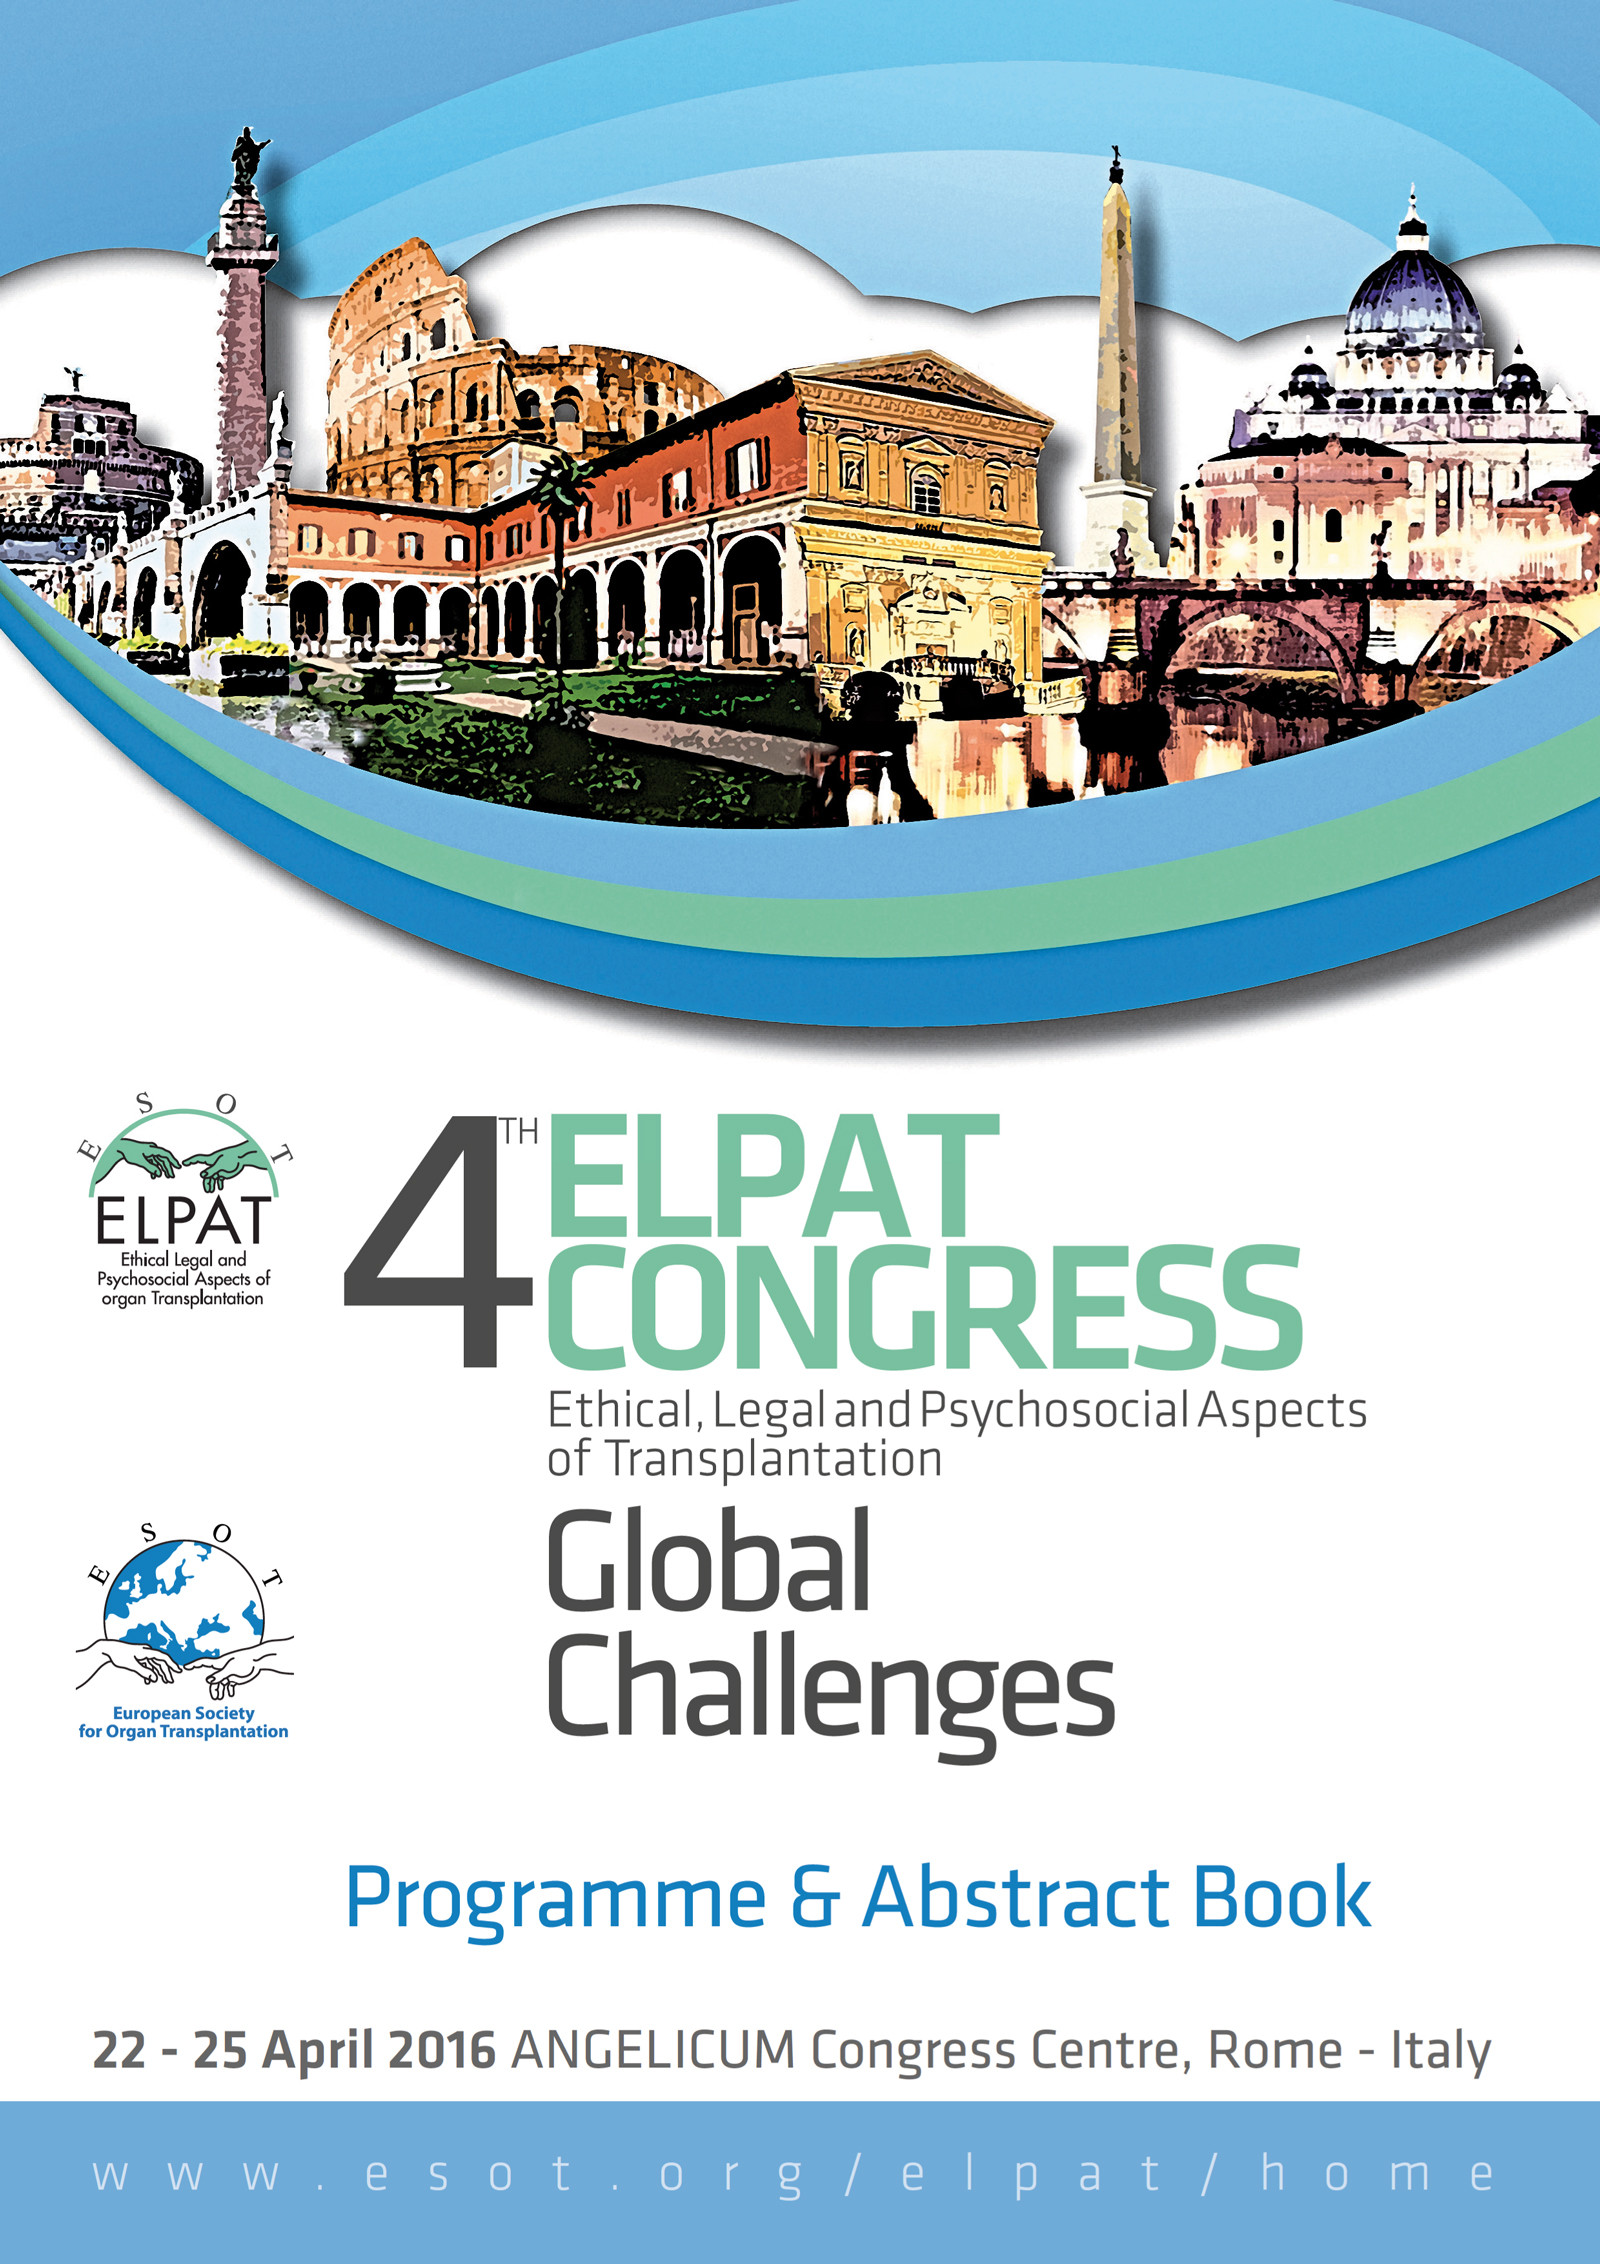 4th Elpat Congress – Ethical, Legal and Psychosocial Aspects of Transplantation. Global Challenges